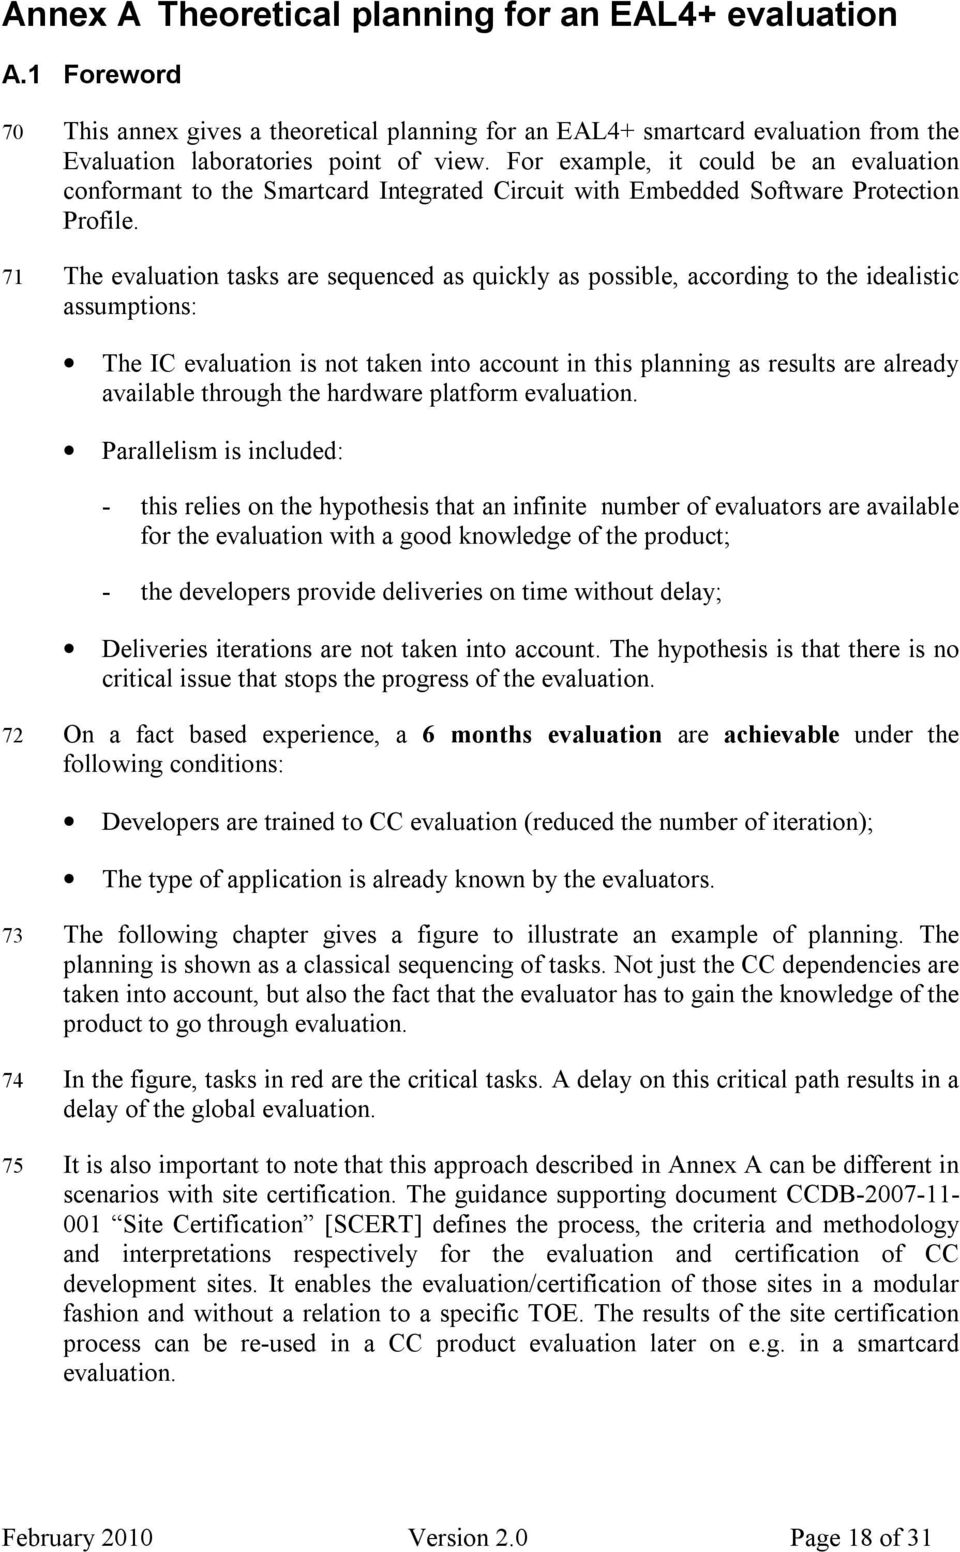 71 The evaluation tasks are sequenced as quickly as possible, according to the idealistic assumptions: The IC evaluation is not taken into account in this planning as results are already available